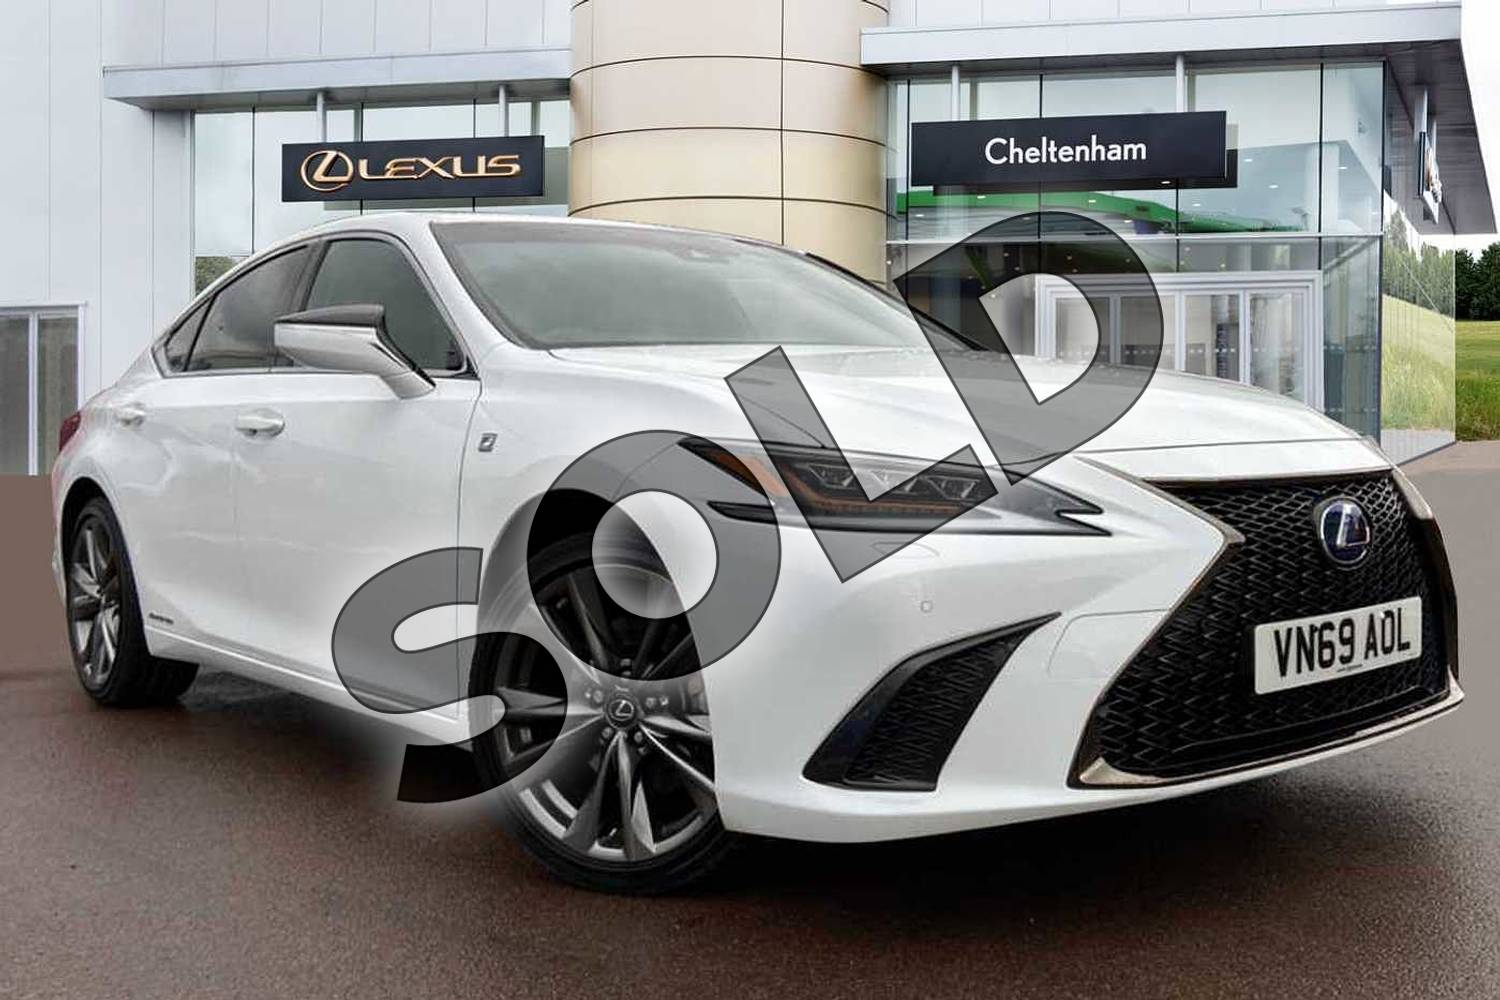 2019 Lexus ES Saloon 300h 2.5 F-Sport 4dr CVT (Tech/Safety Pack) in White at Lexus Cheltenham